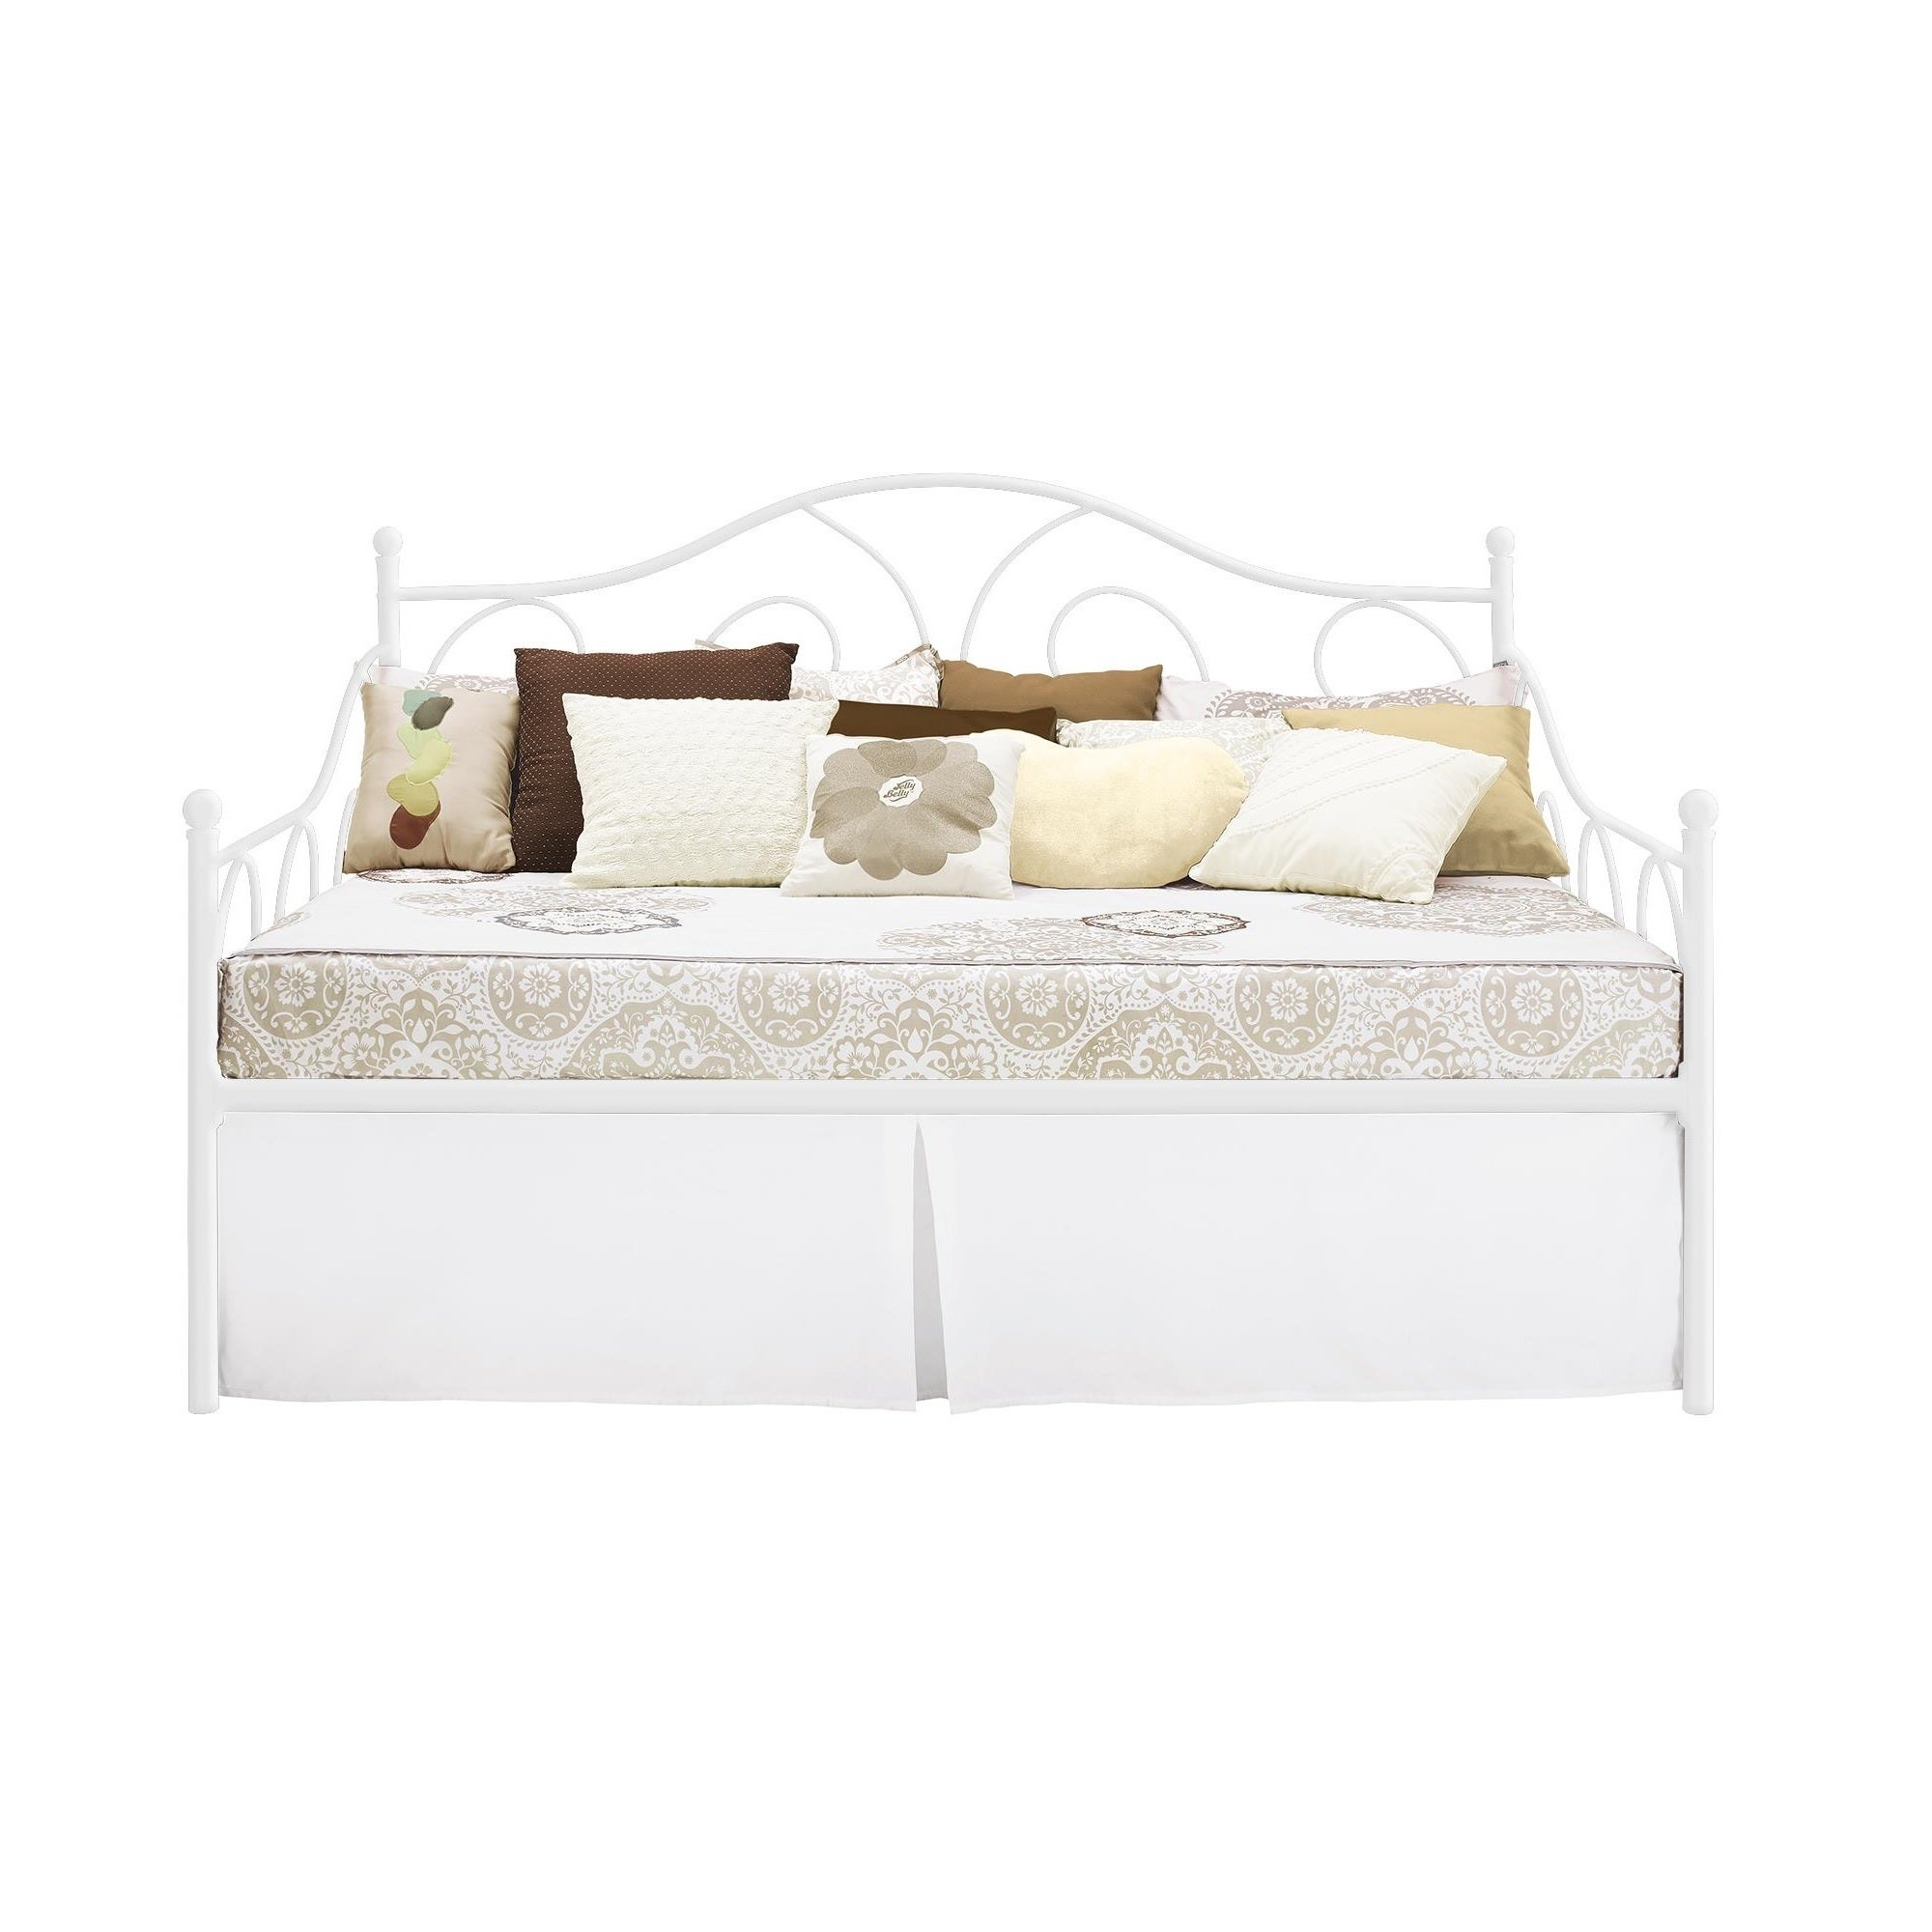 Dhp Victoria Full Size White Metal Daybed Free Shipping Today 9724332